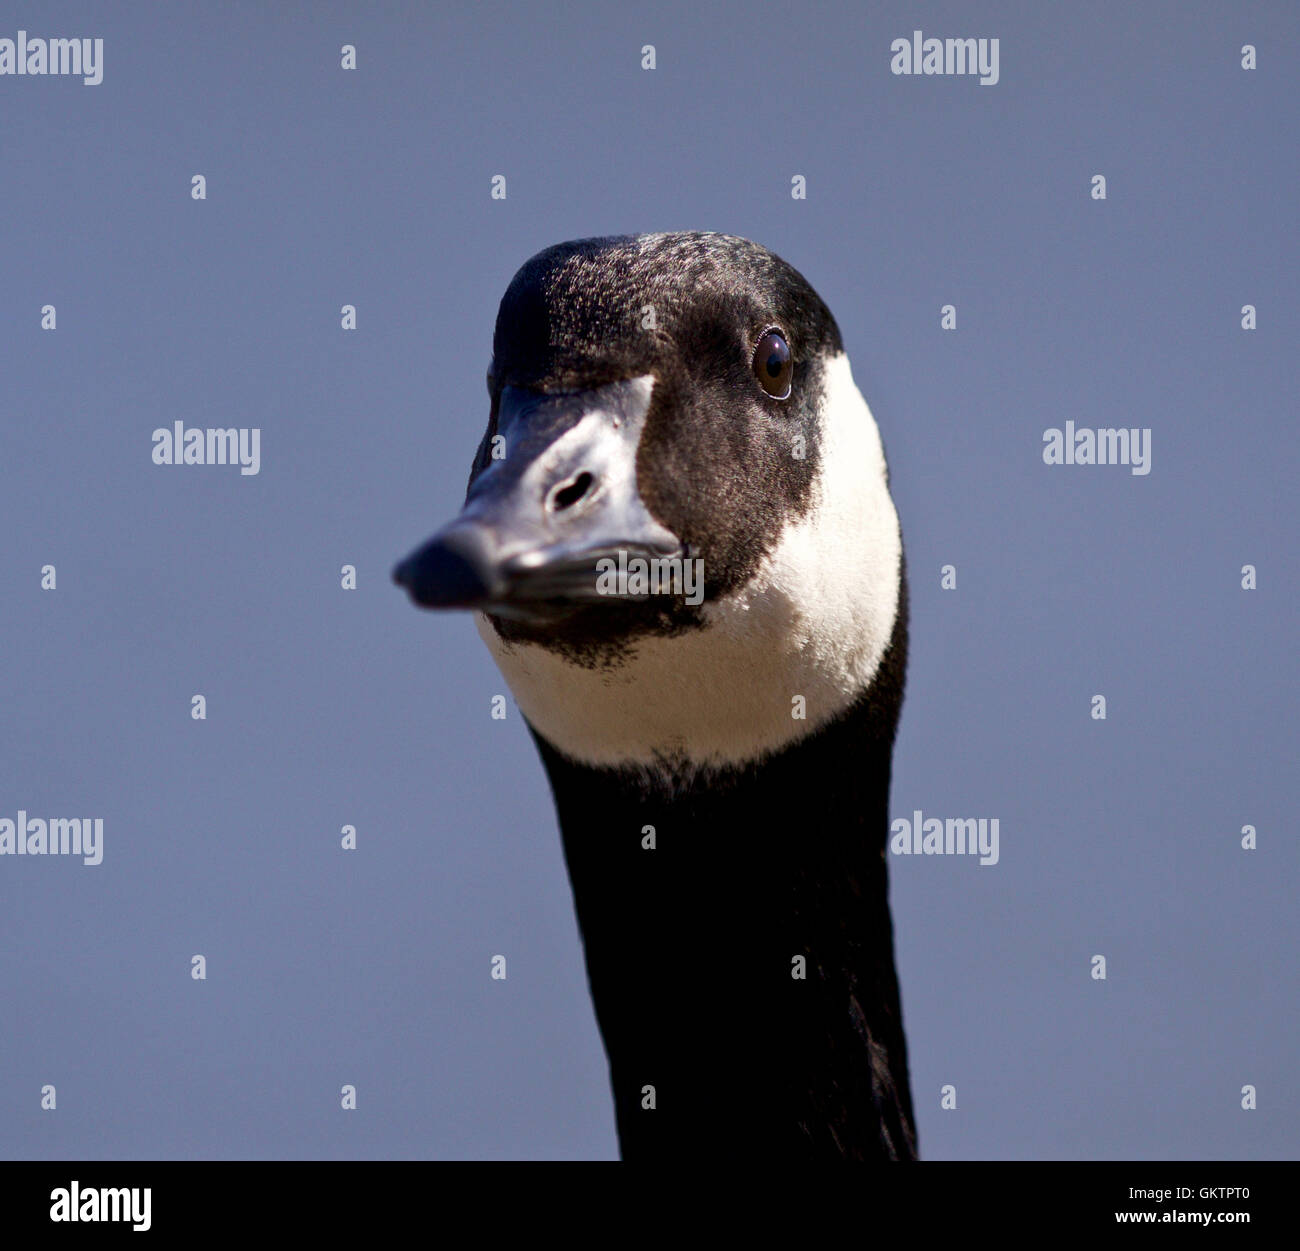 Isolated Portrait Of A Cute Canada Goose Stock Photo 115485440 Alamy